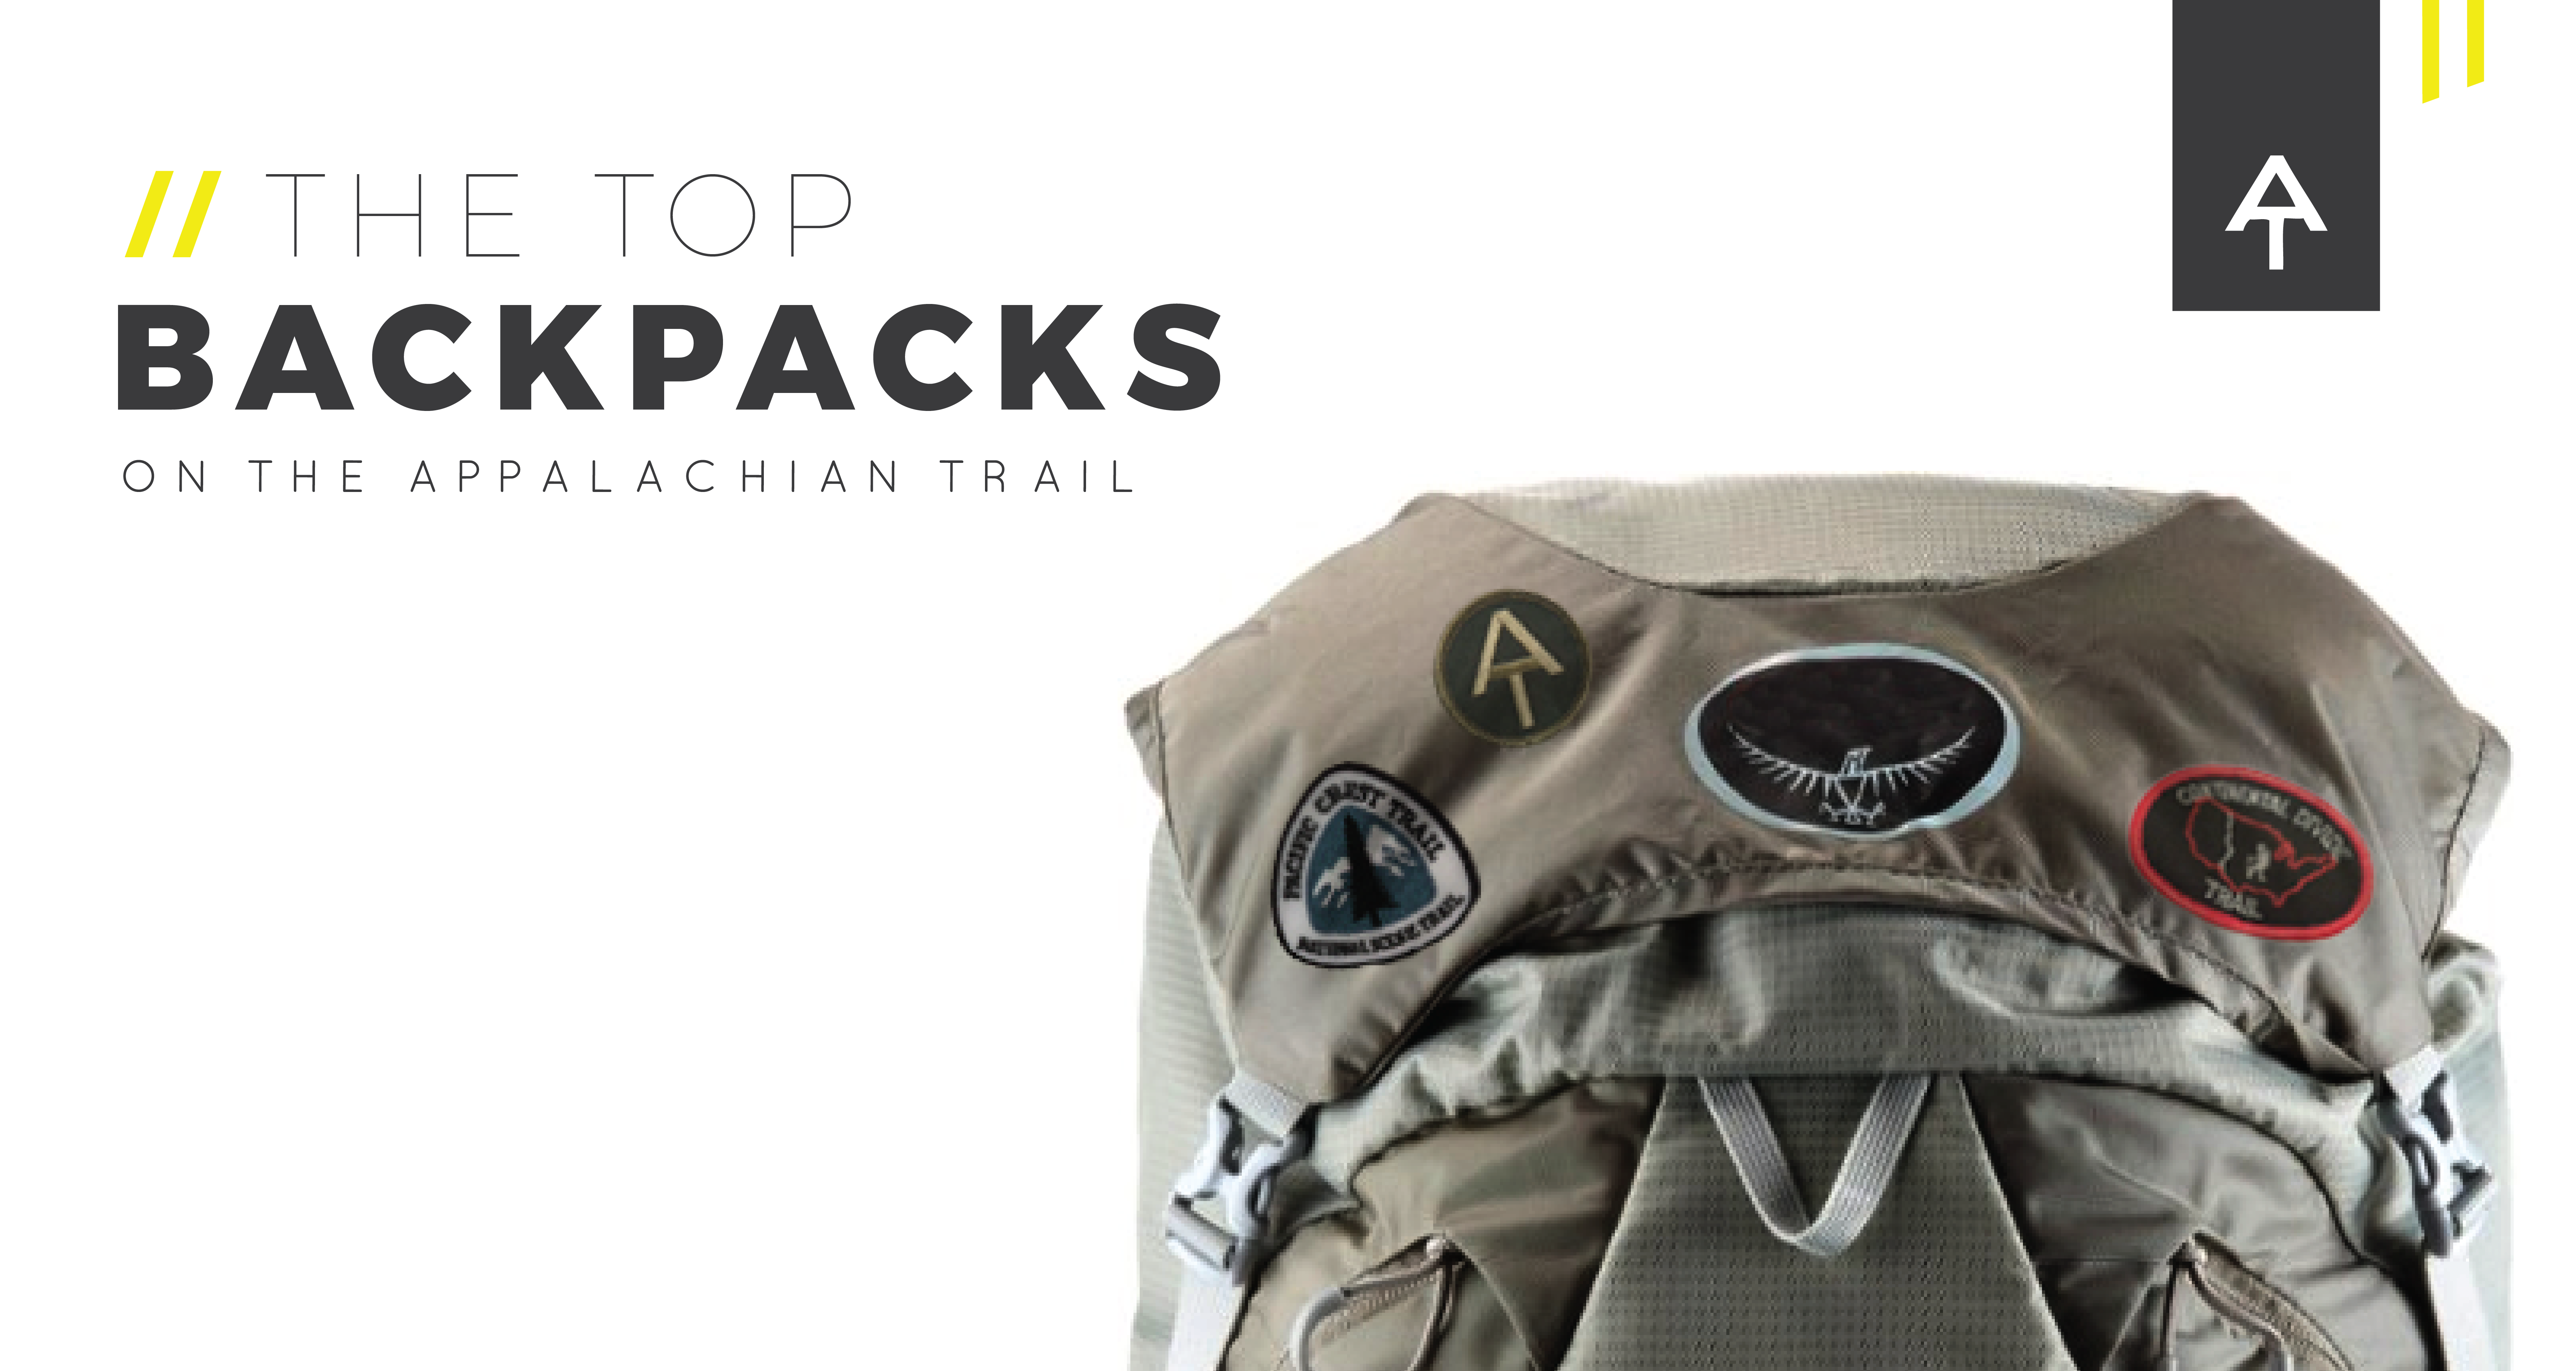 dc2a7ca43a138 The Top Backpacks on the Appalachian Trail  2016 AT Thru-Hiker Survey